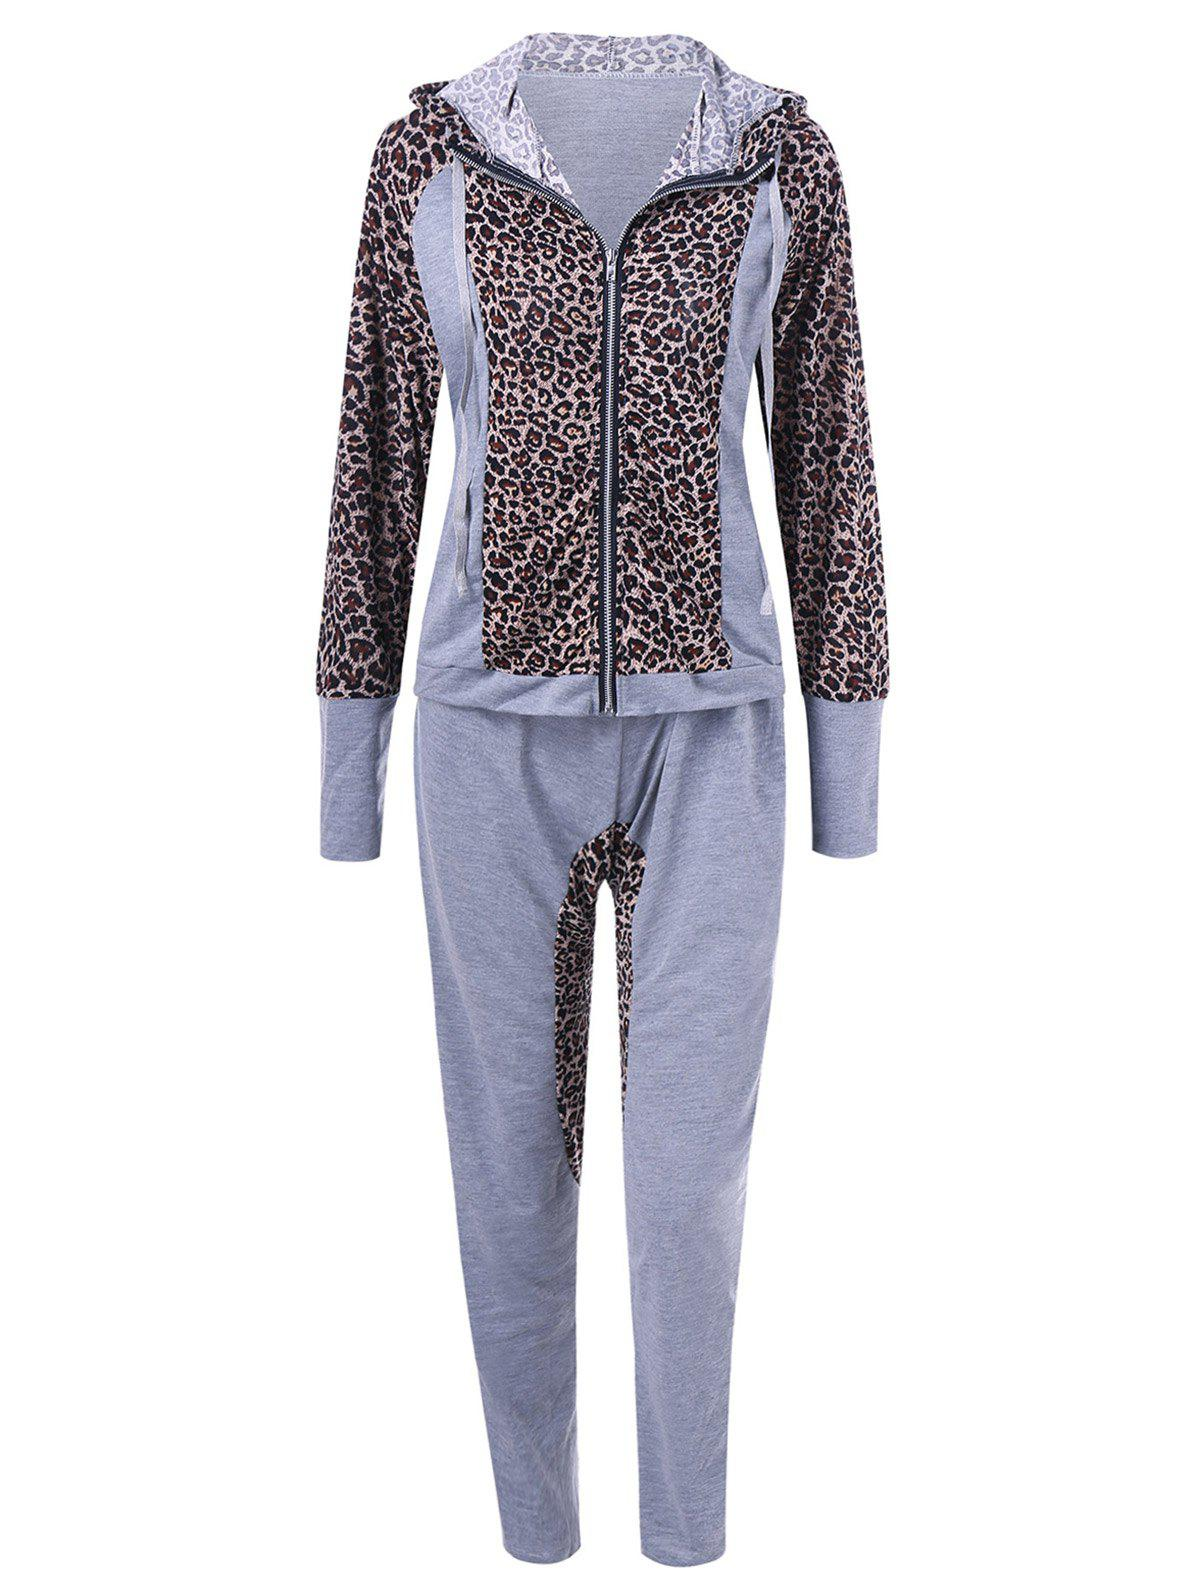 Athletic Pants With Leopard Zipper Hoodie - GRAY M